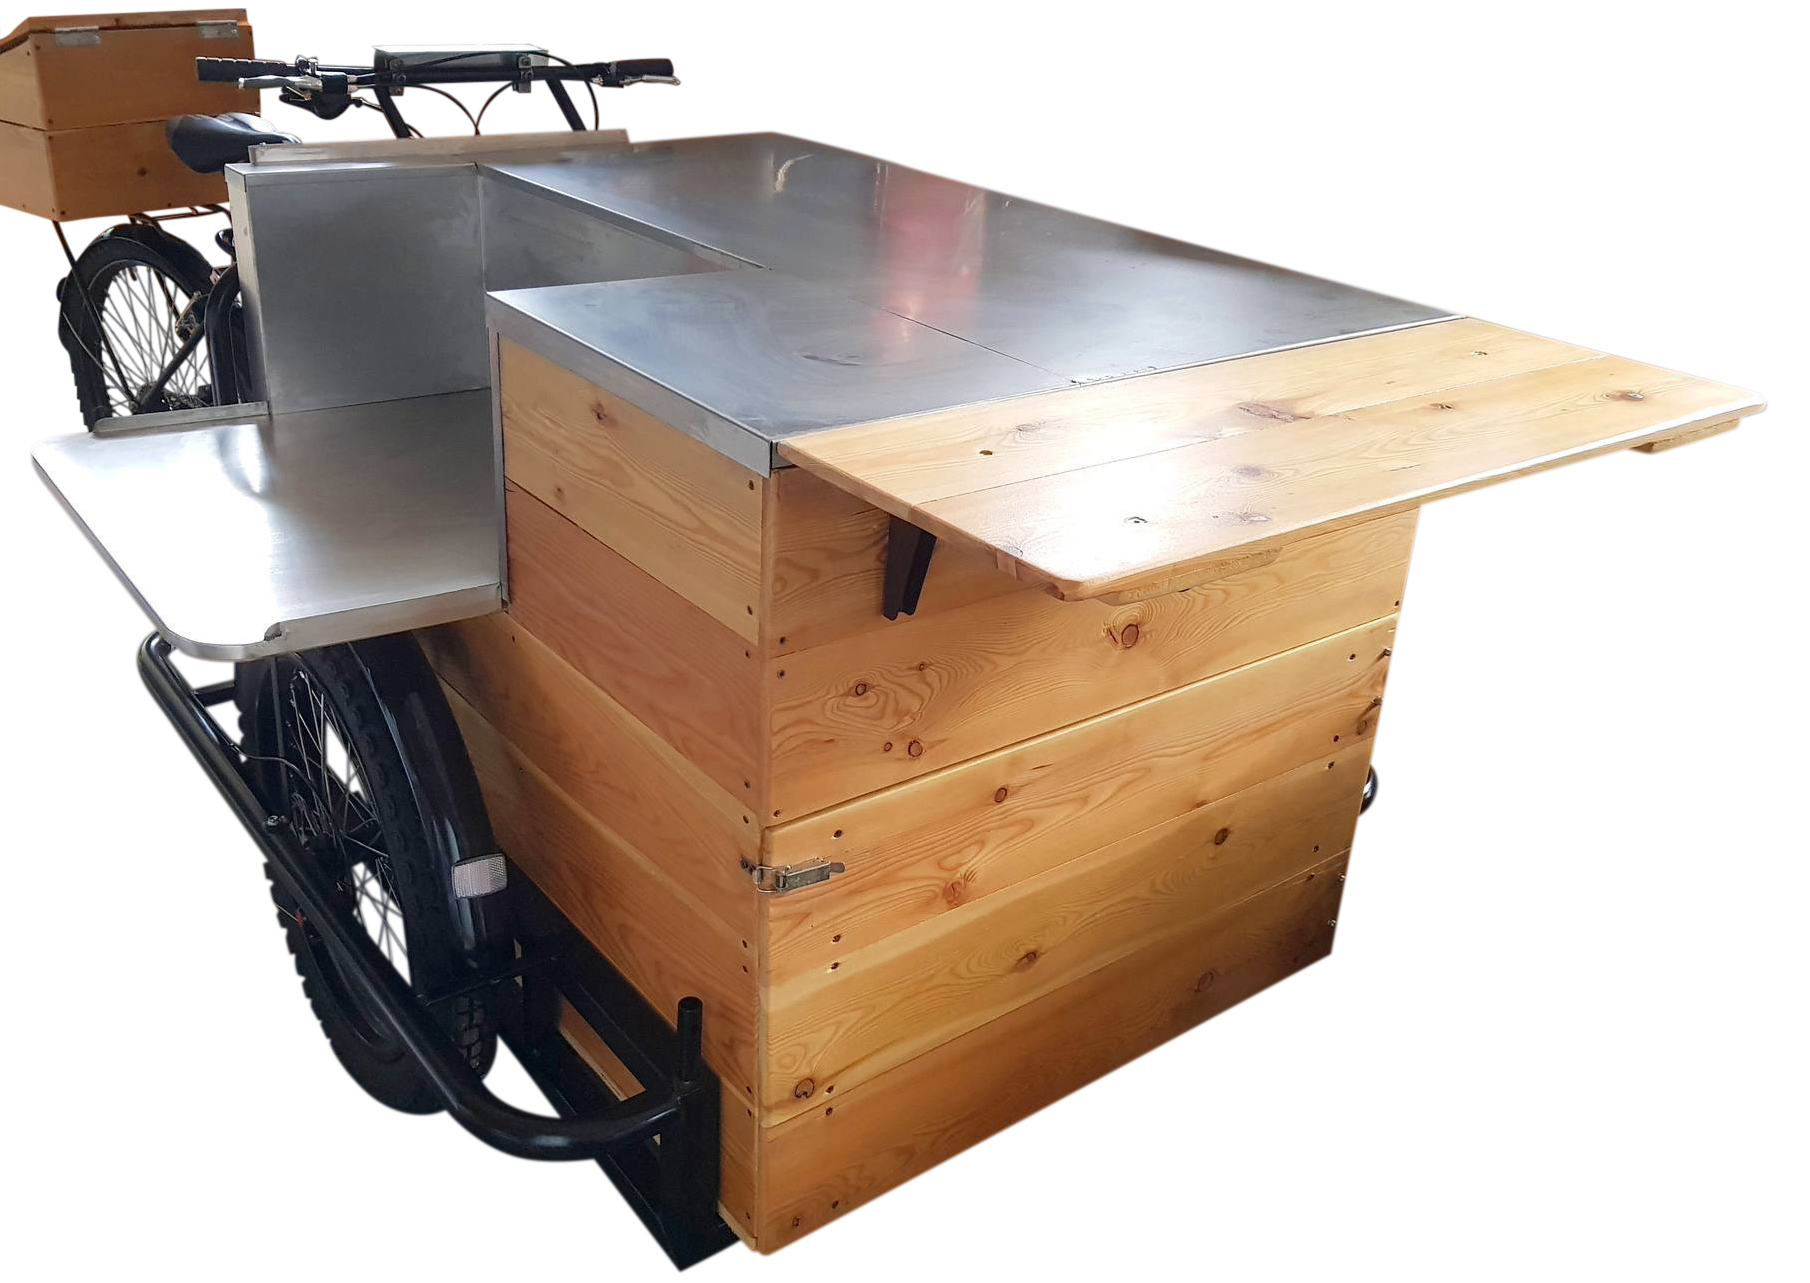 BANCO_HAWAI_TRICYCLE_WOODEN_WORKBENCH_IN_LEGNO_TRICICLO_STREETFOOD_3